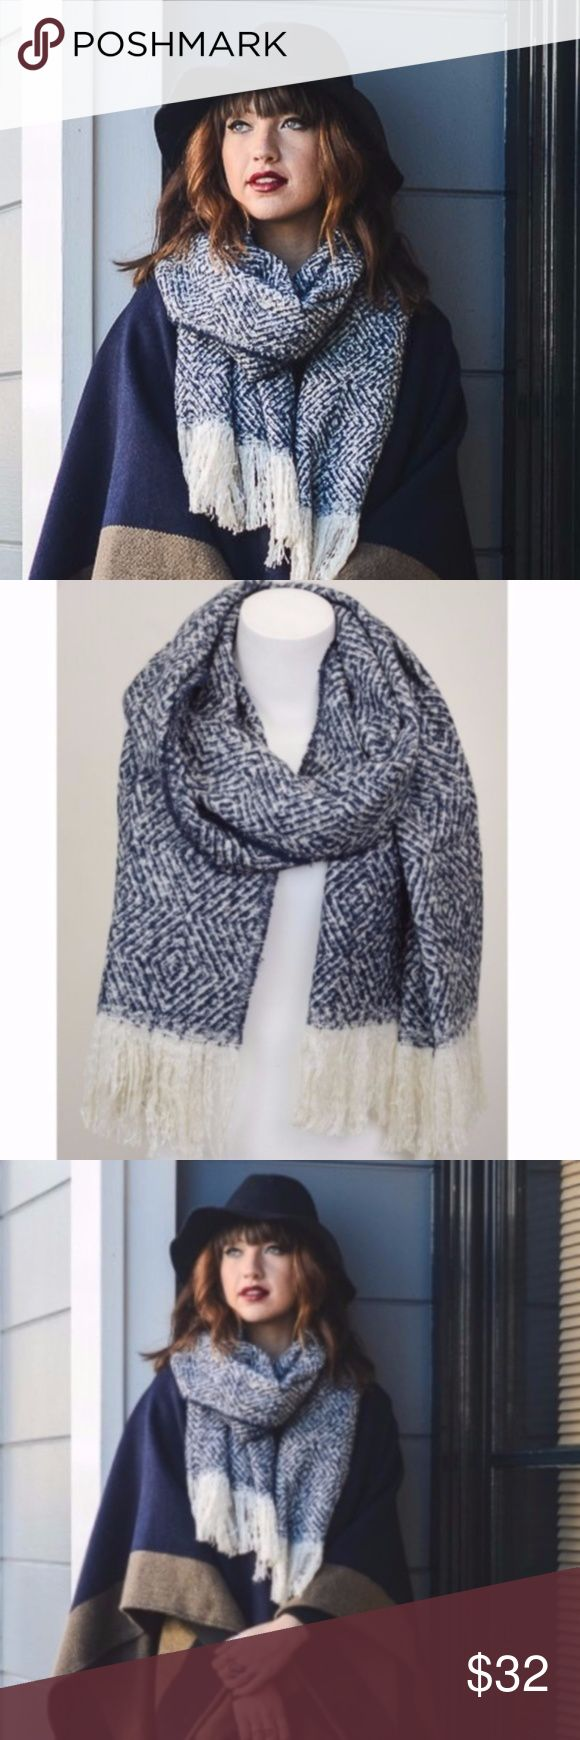 "Navy Blue Tassel Scarf Diamond print navy blue scarf with ivory tassle trim. Price firm unless bundled. No trades.  100% Acrylic Dimension 76""x23"" Accessories Scarves & Wraps"